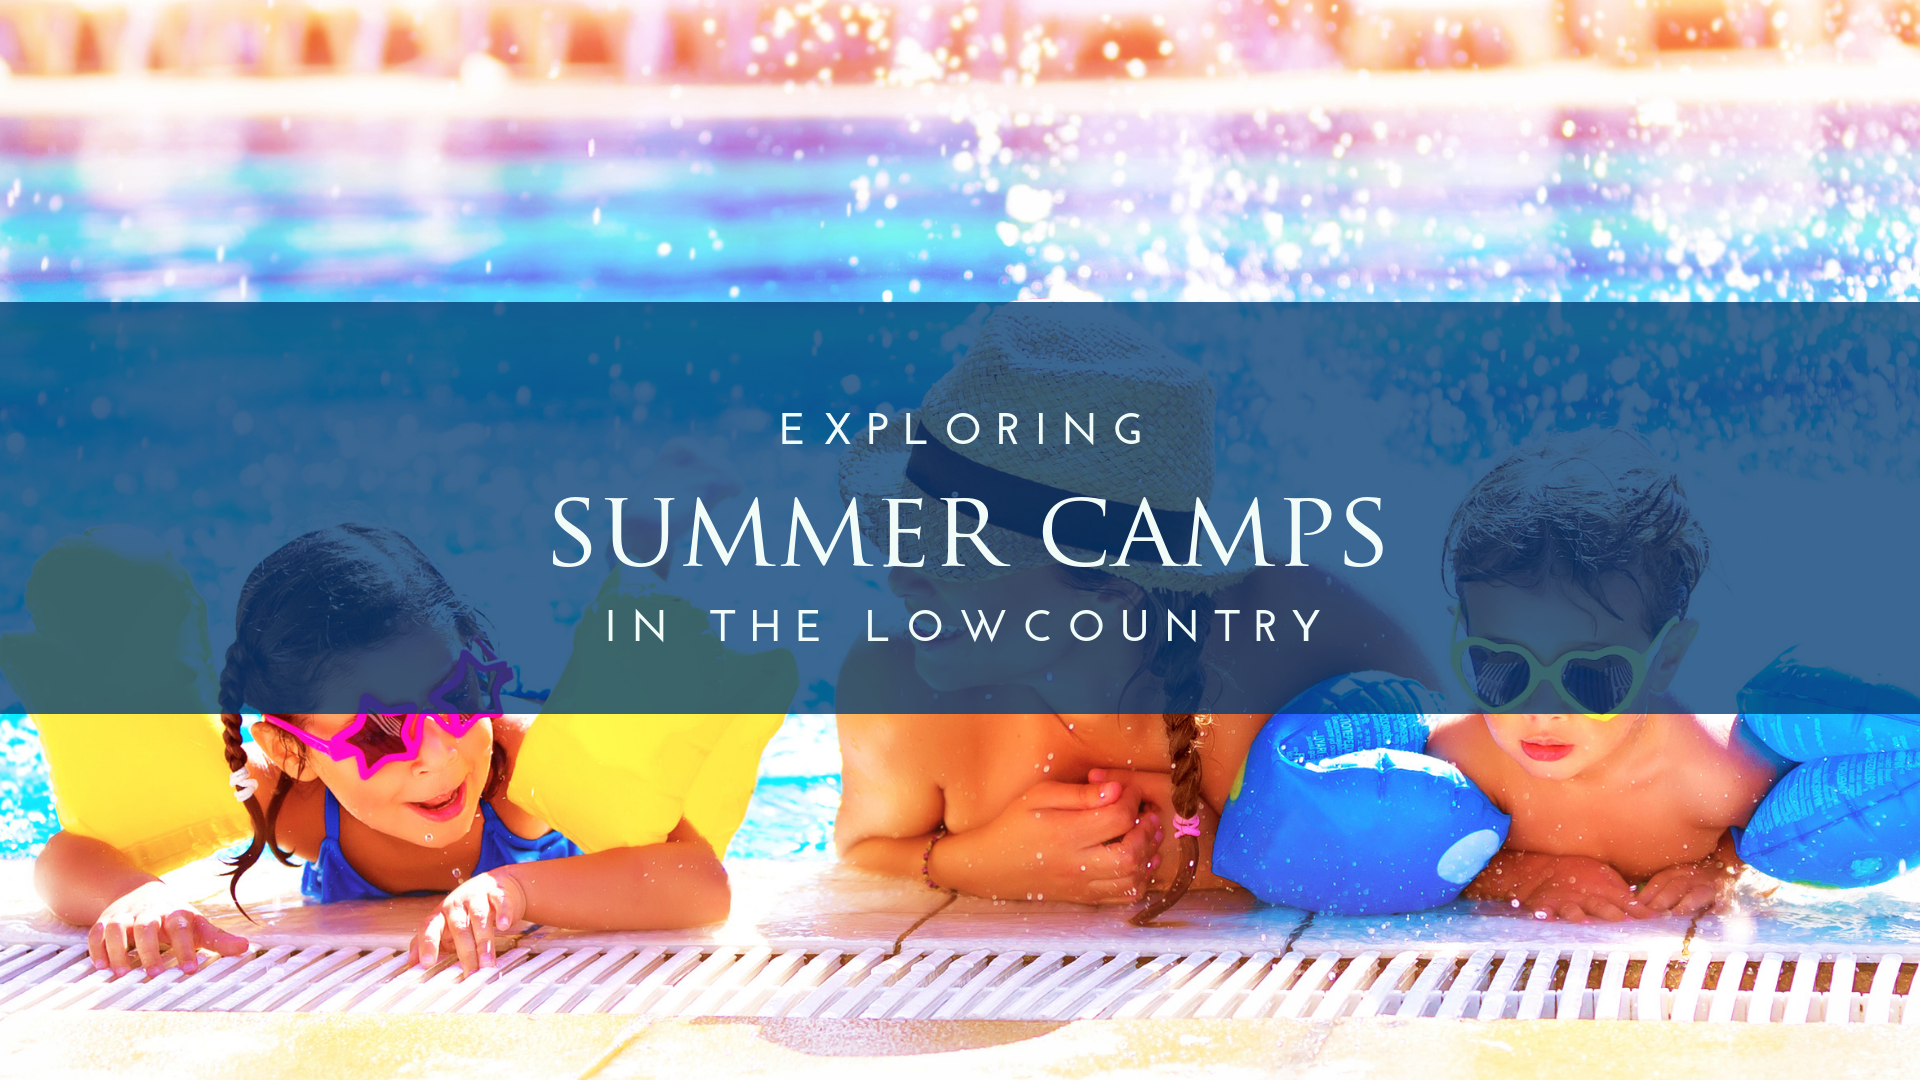 Summer Camps in the Lowcountry